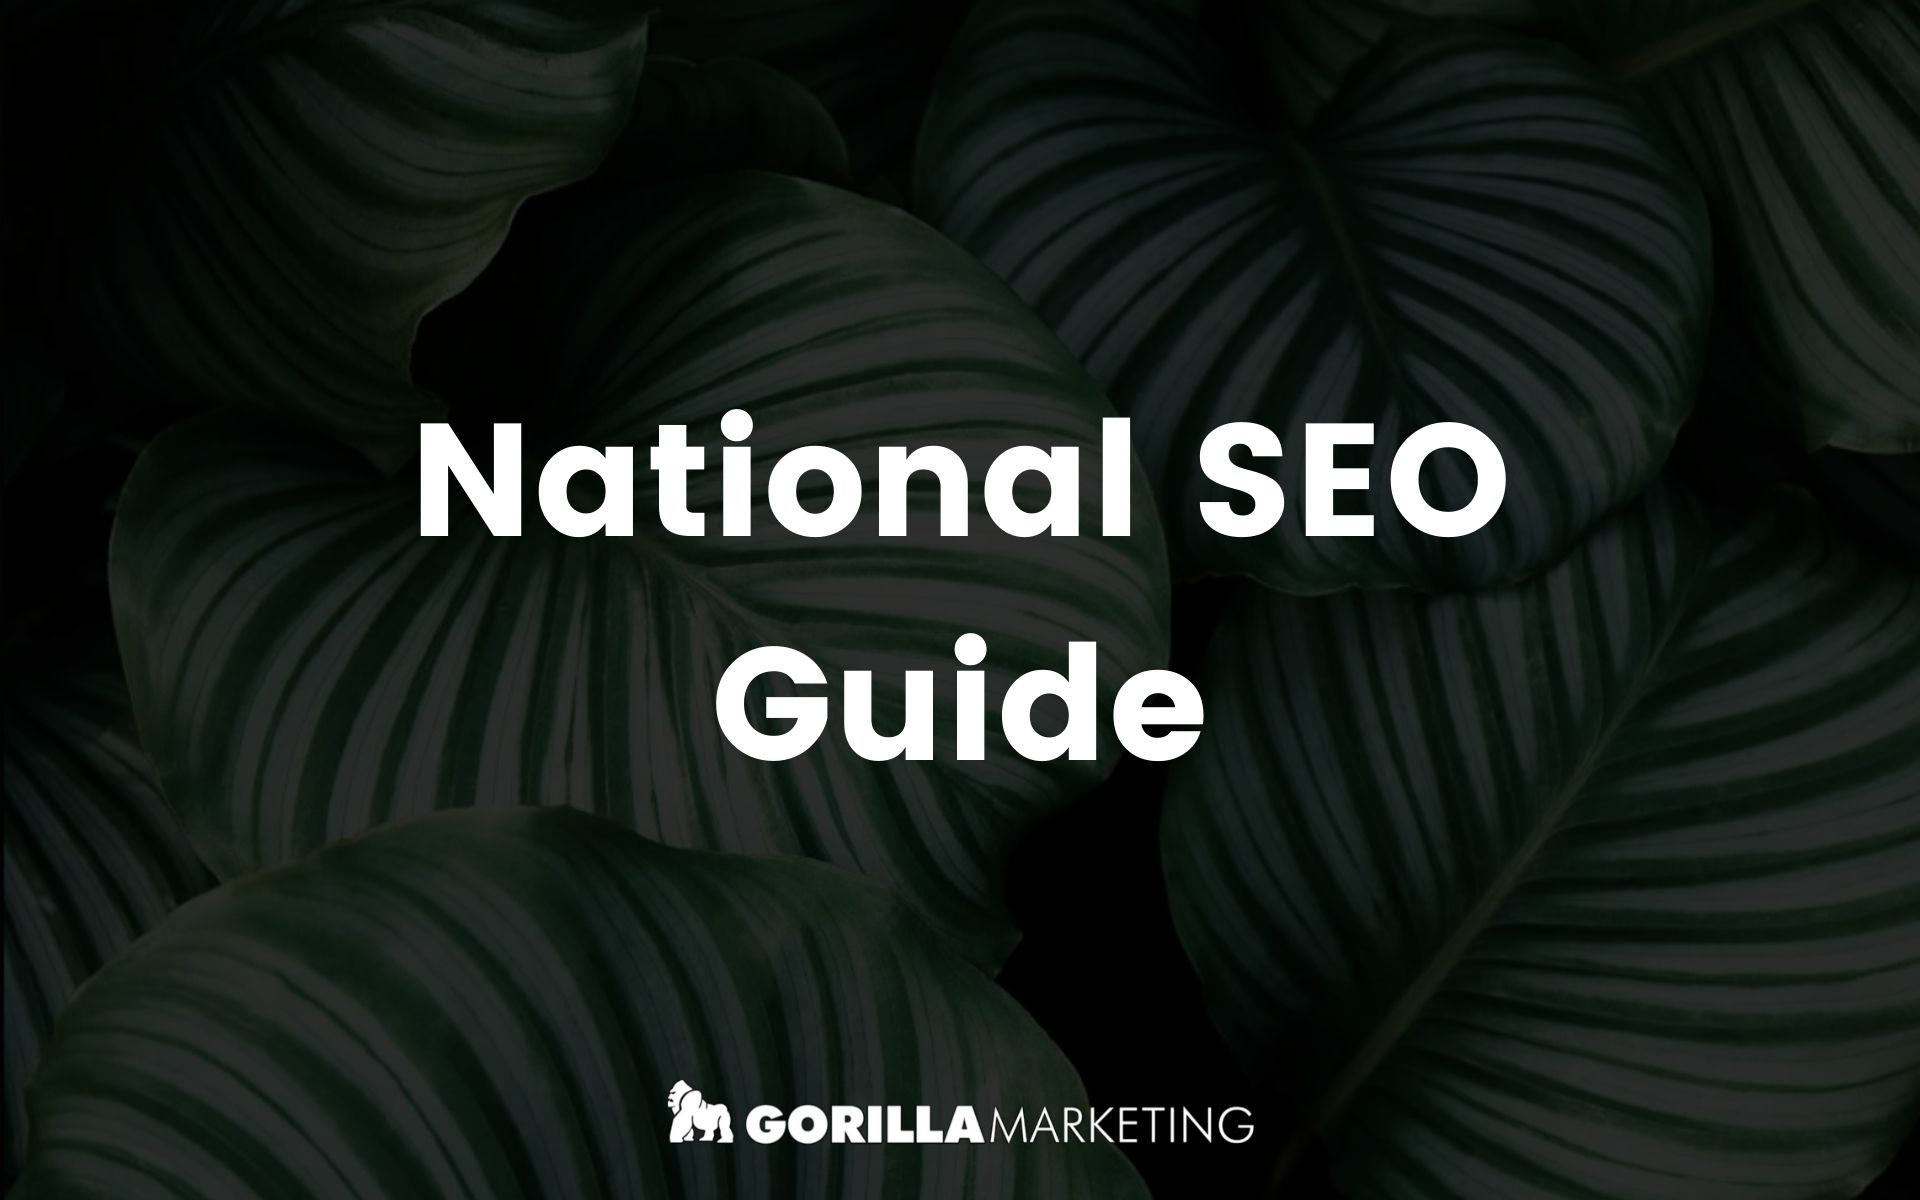 National SEO Guide